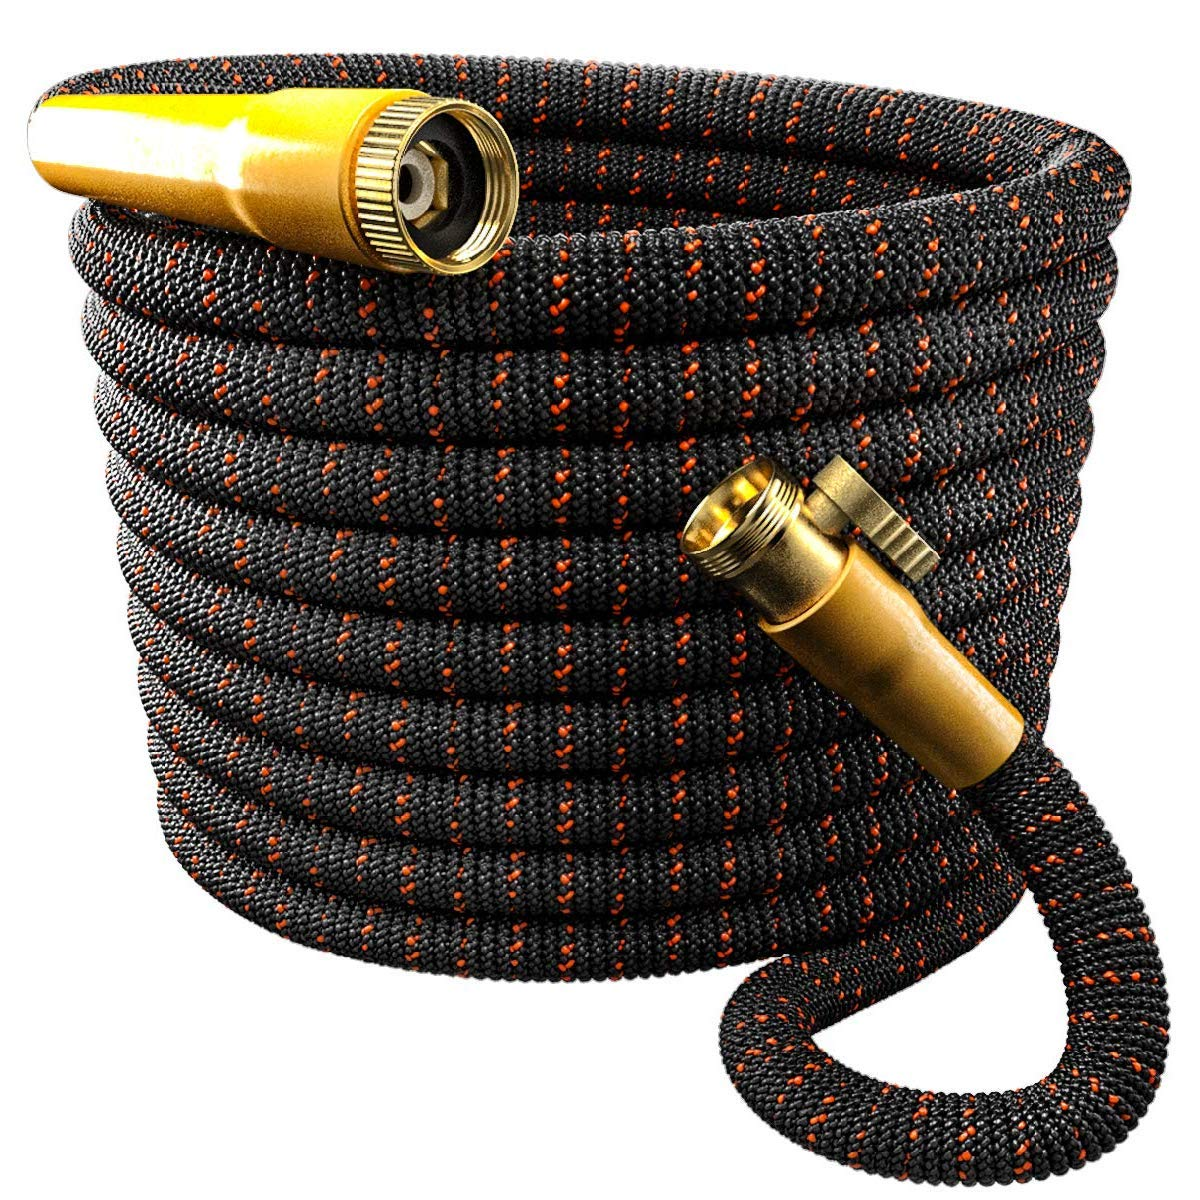 TBI Pro [Upgraded 2019] Garden Hose Expandable & Flexible - Superior 3750D Fabric   4-Layers Flex Latex   Extra-Strong Brass Connectors with Pocket Protectors (50FT Hose Only)